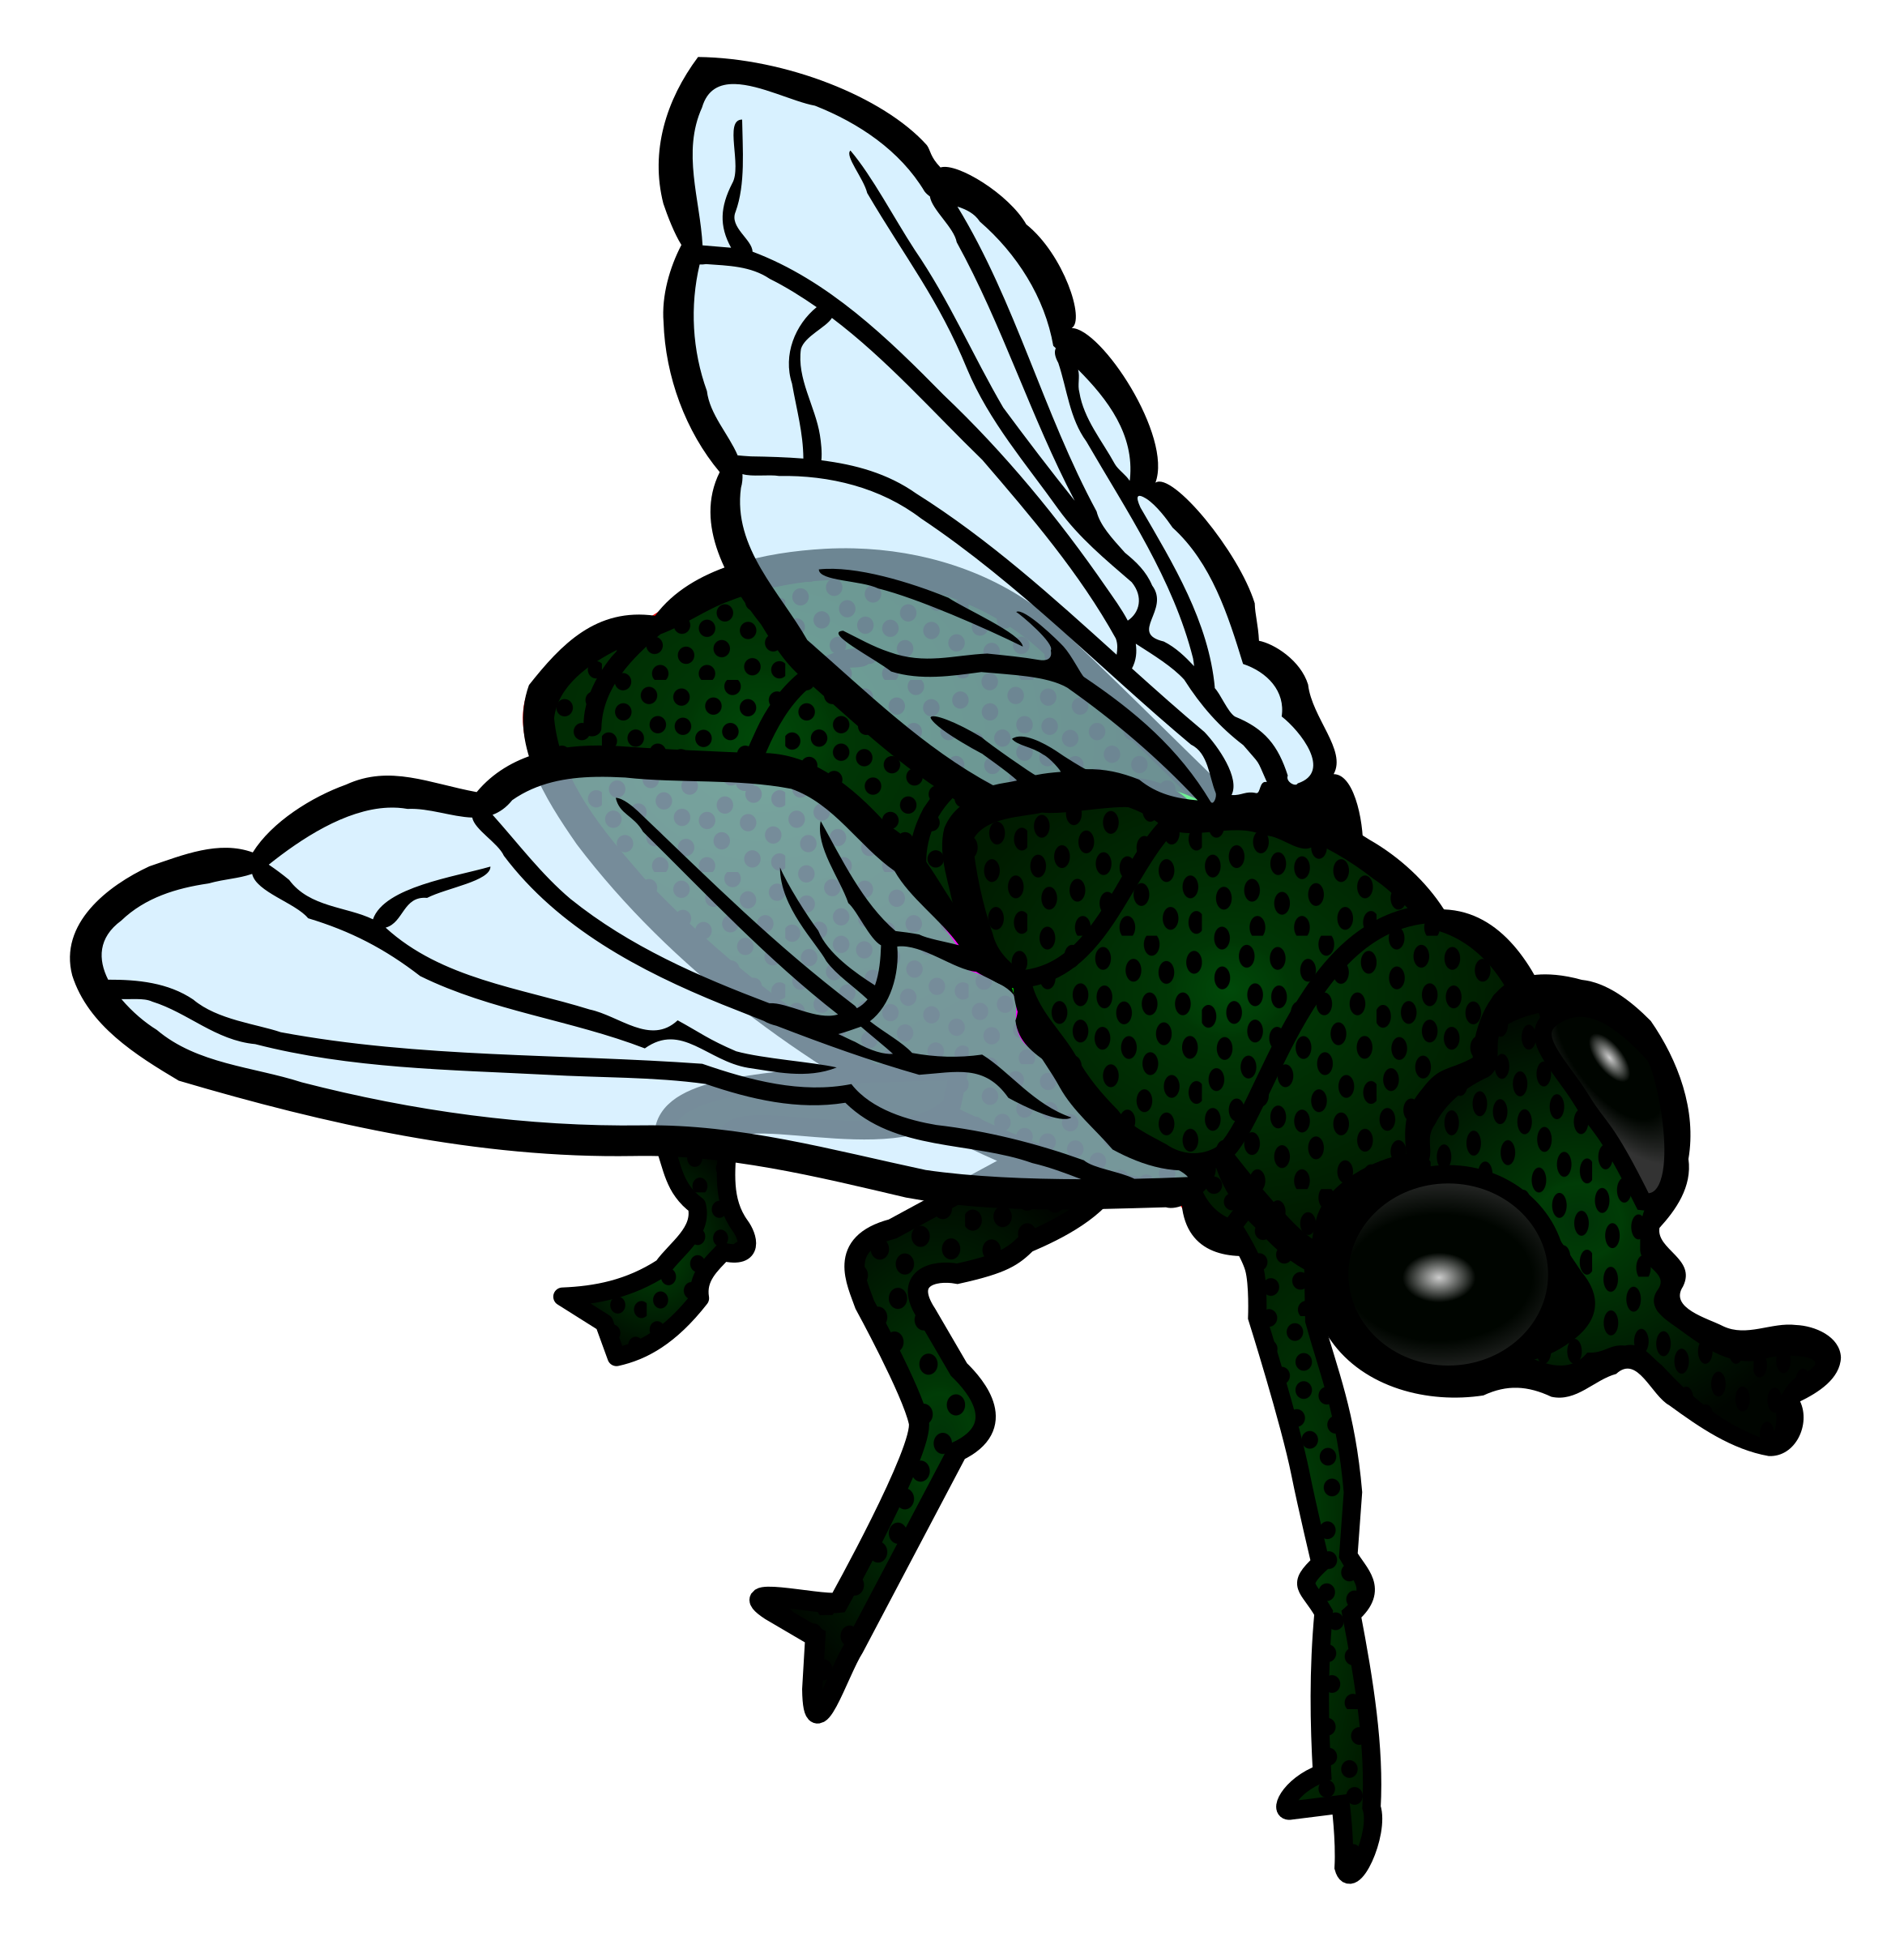 Fly clipart insect. Coloured big image png